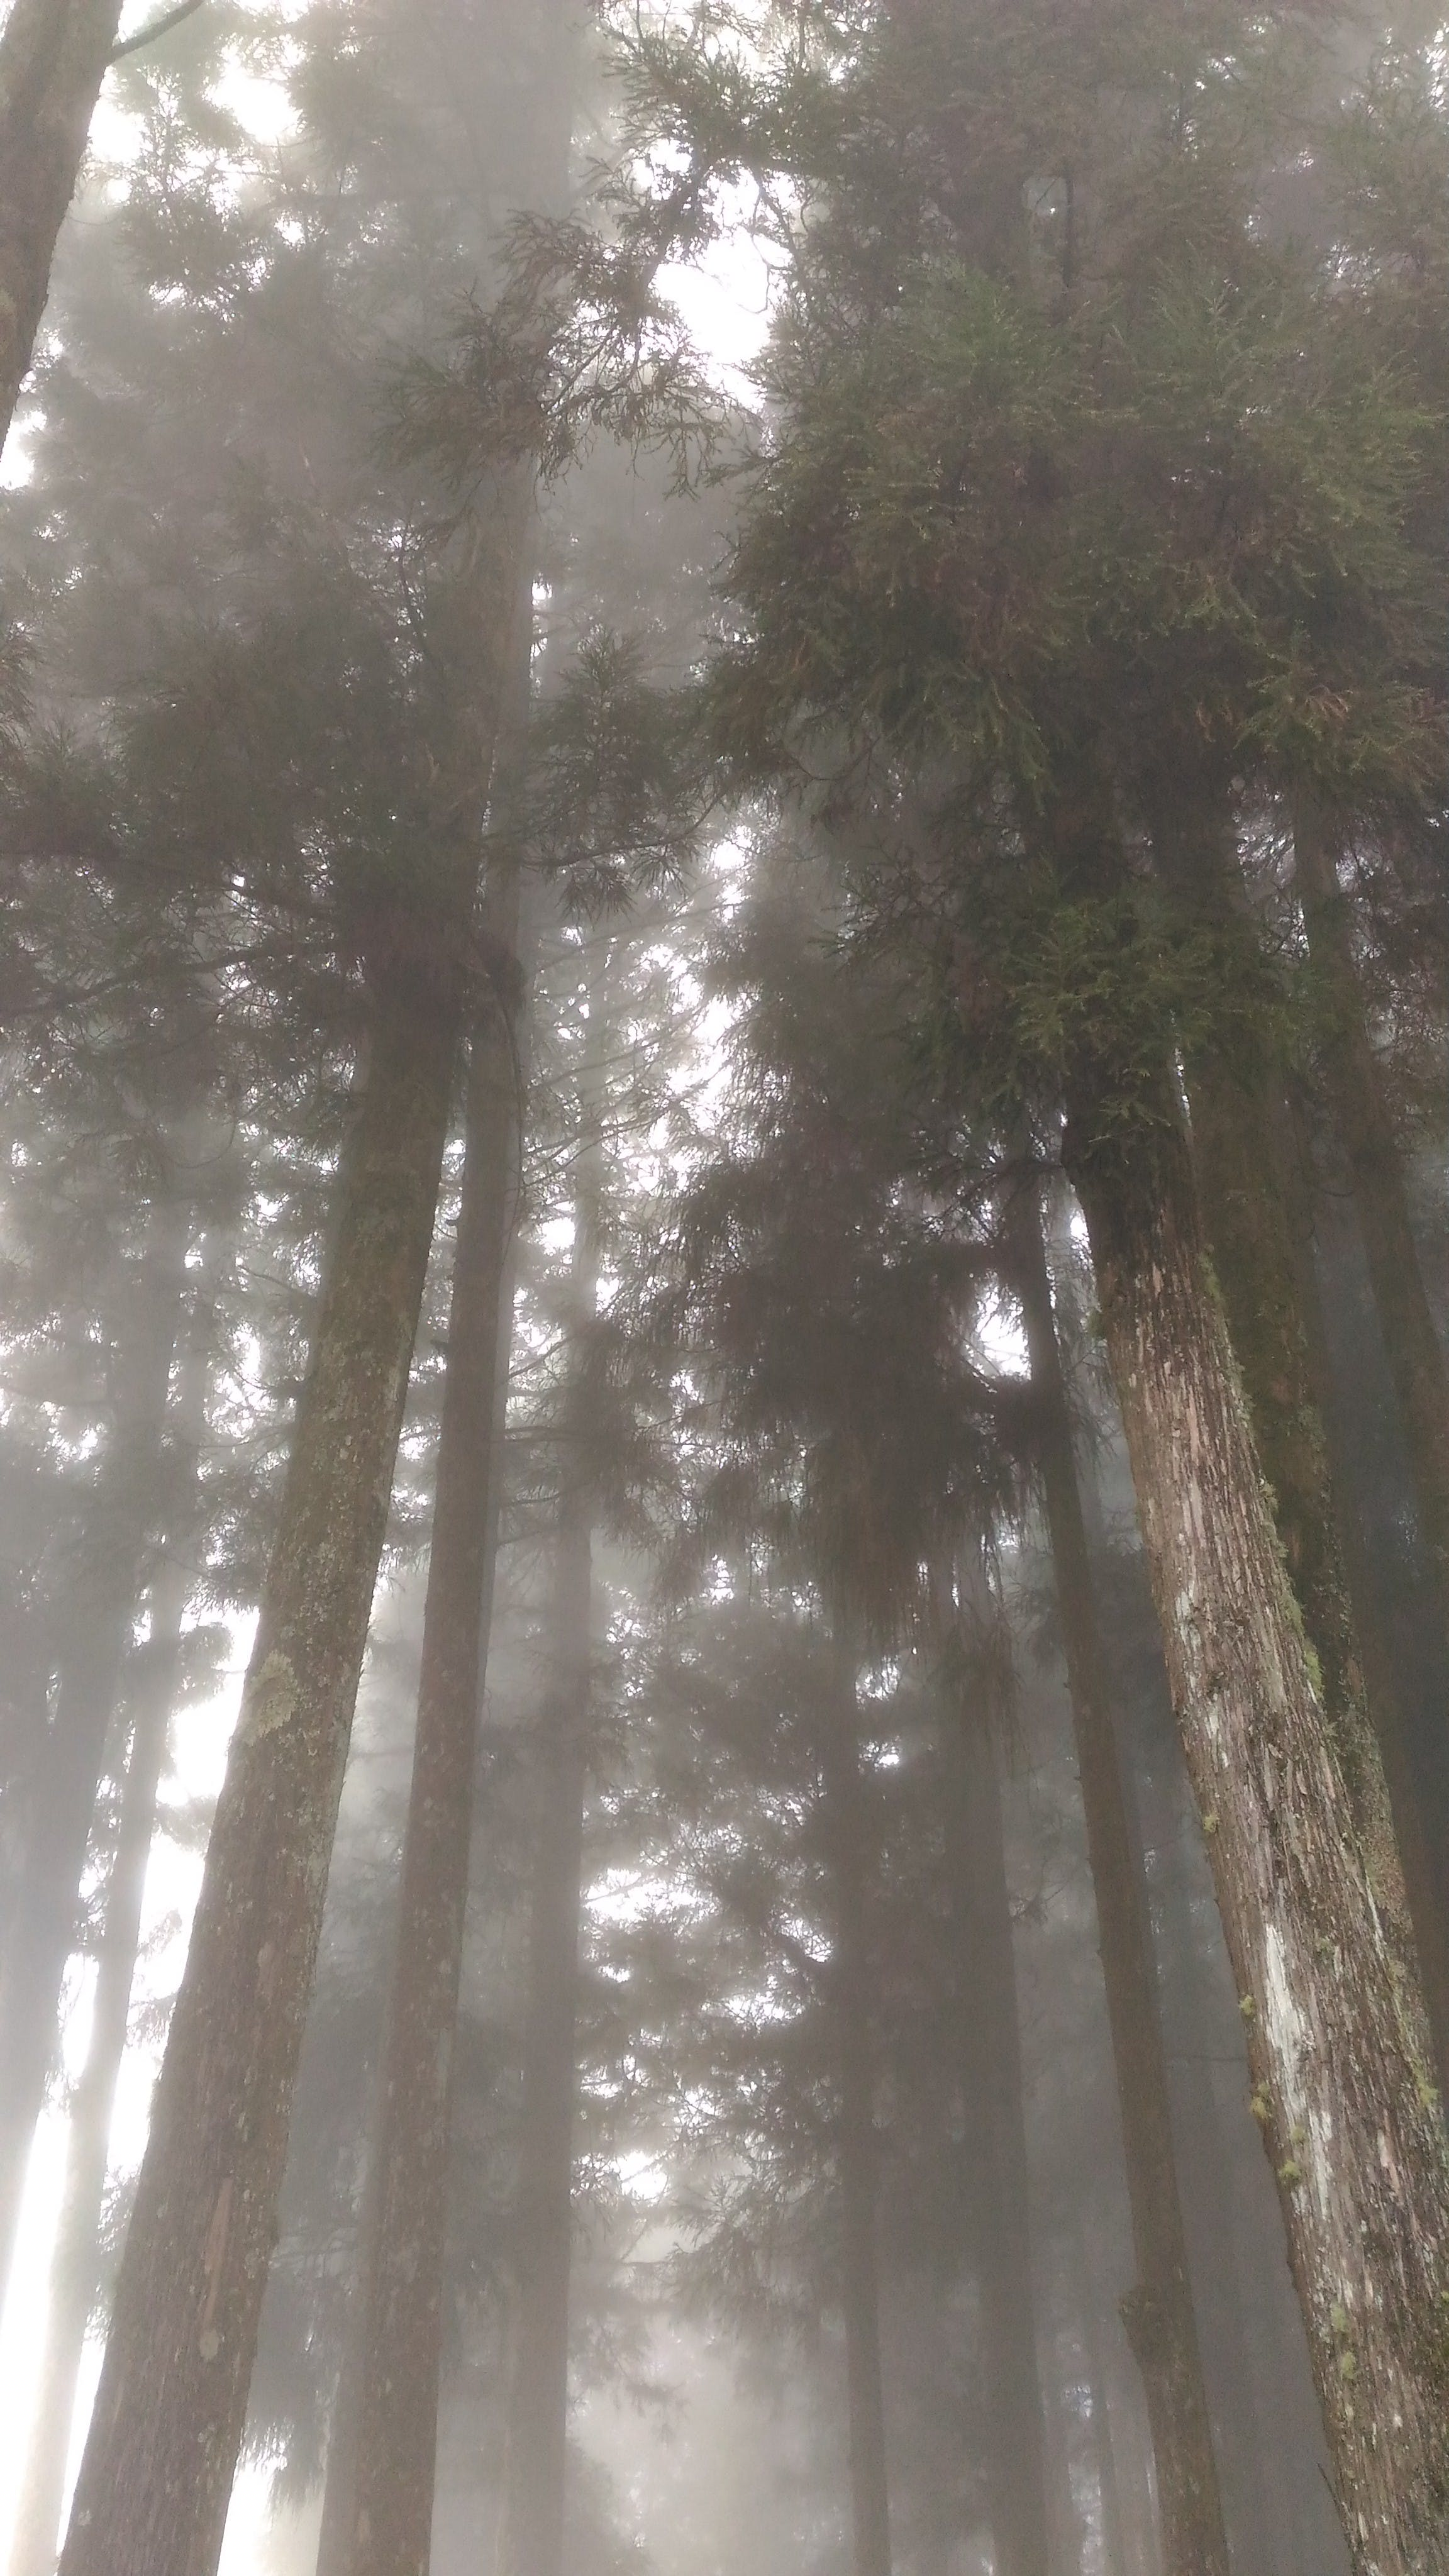 Free stock photo of fog, forest, nature, outdoors